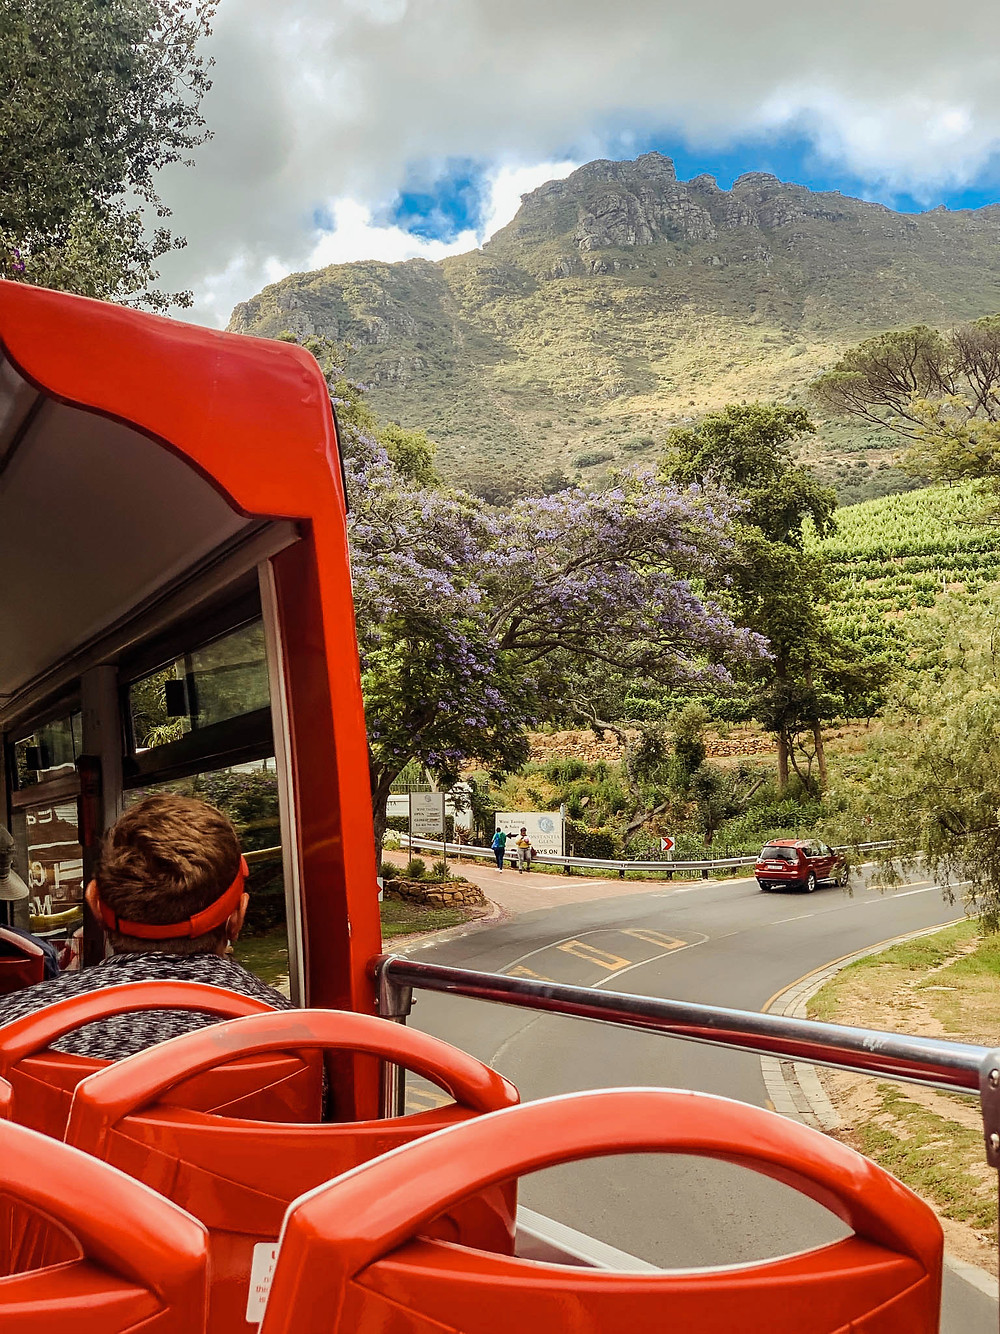 Some stunning bus-top views in Cape Town